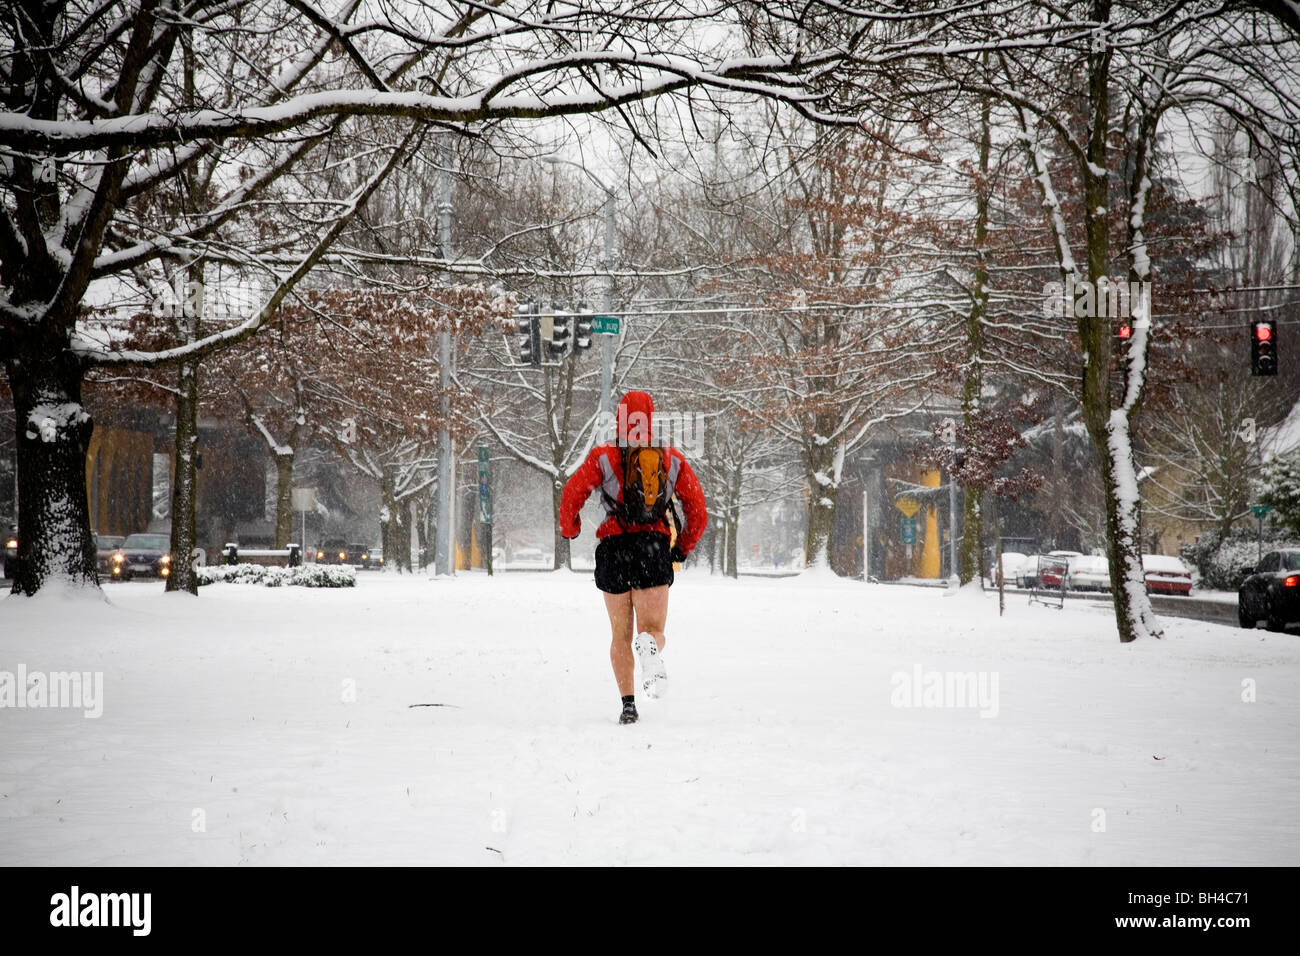 A male runner with a backpack runs down a city street while wearing shorts in the winter. - Stock Image